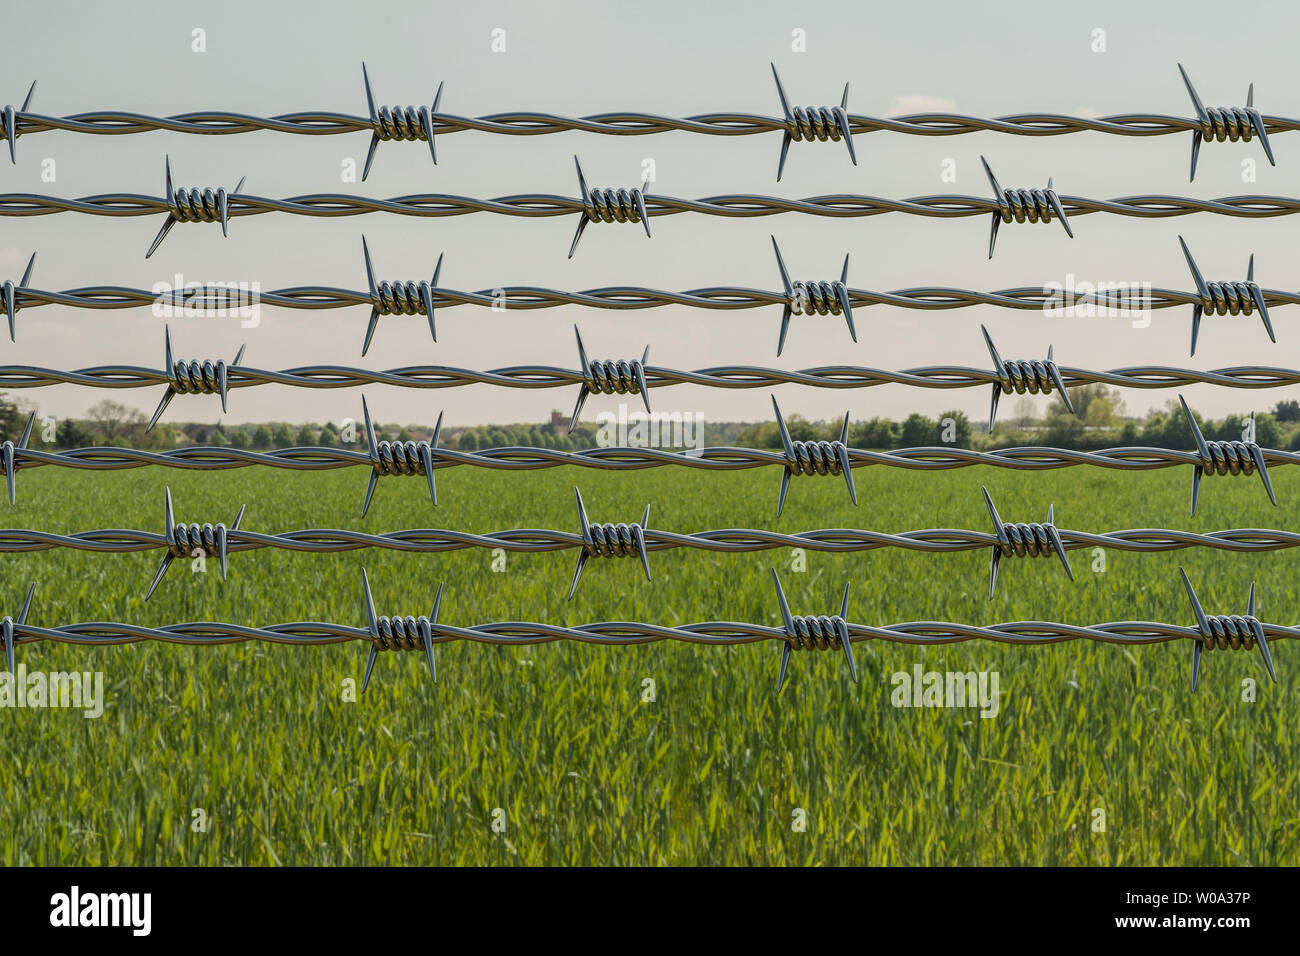 Barbed wire fence of a restricted area under blue sky 3d illustration - Stock Image